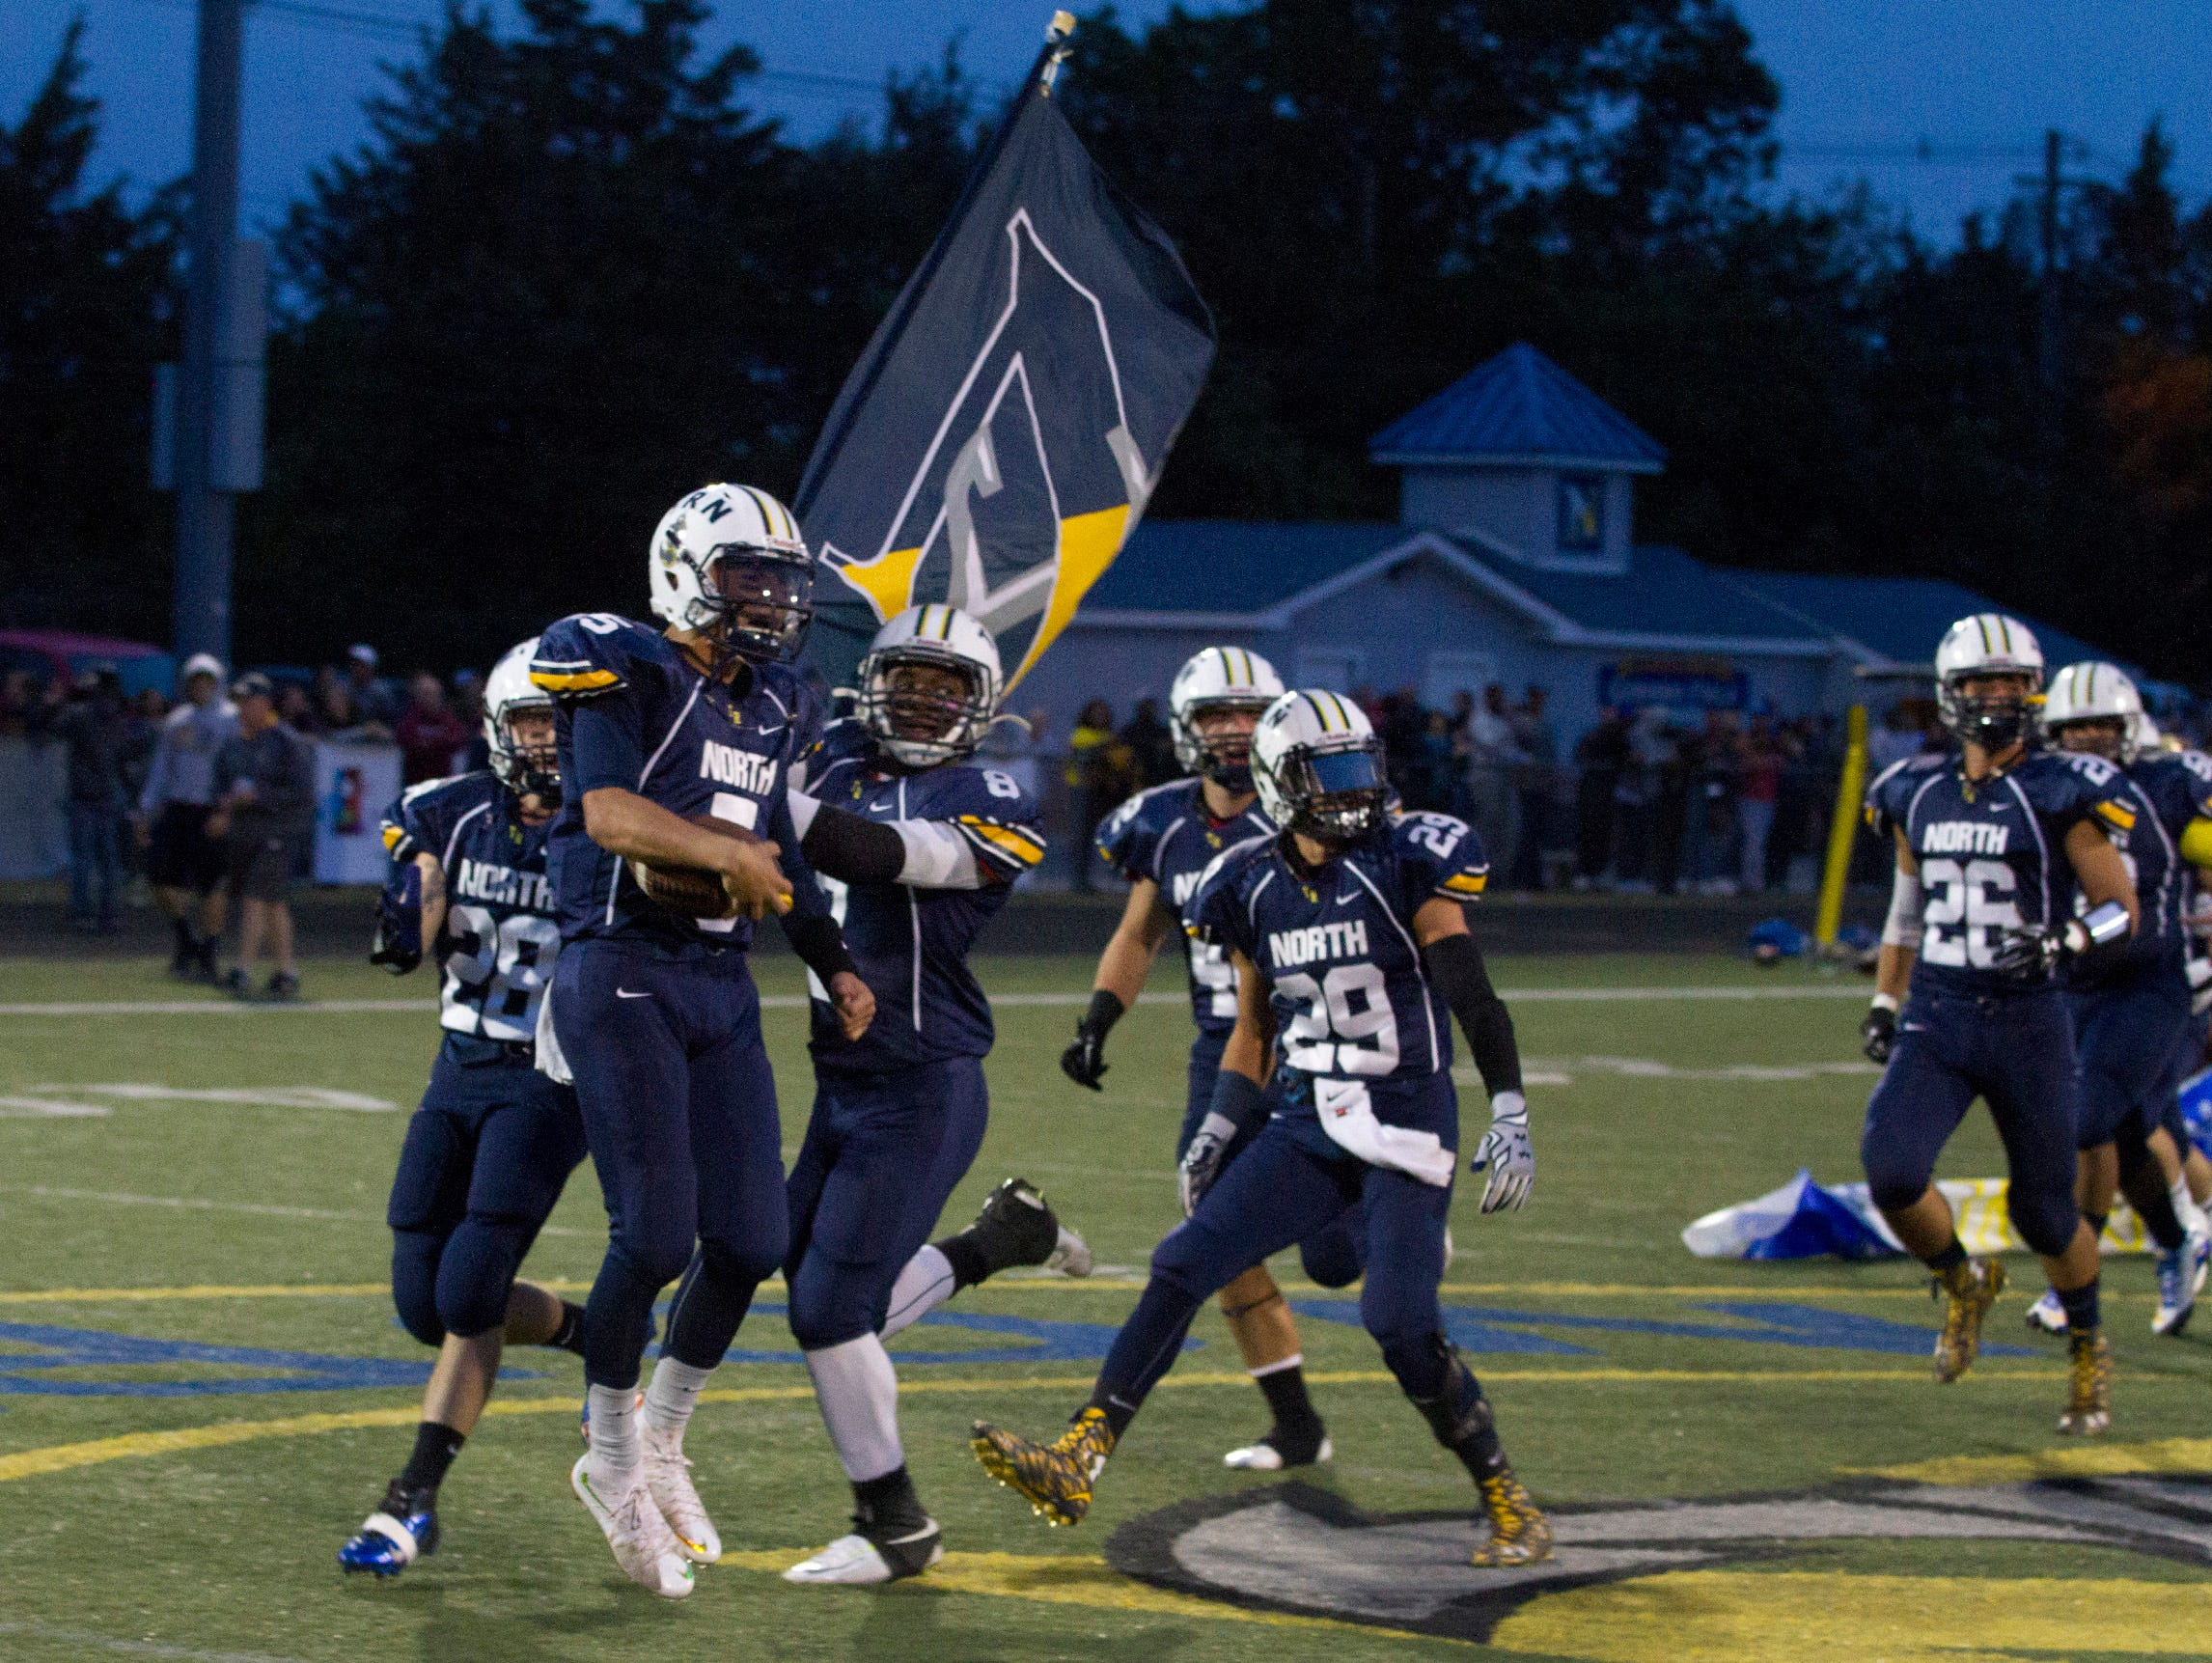 Toms River North heads onto the field for game. Toms River South vs Toms River North Football in Toms River NJ on September 25, 2015.